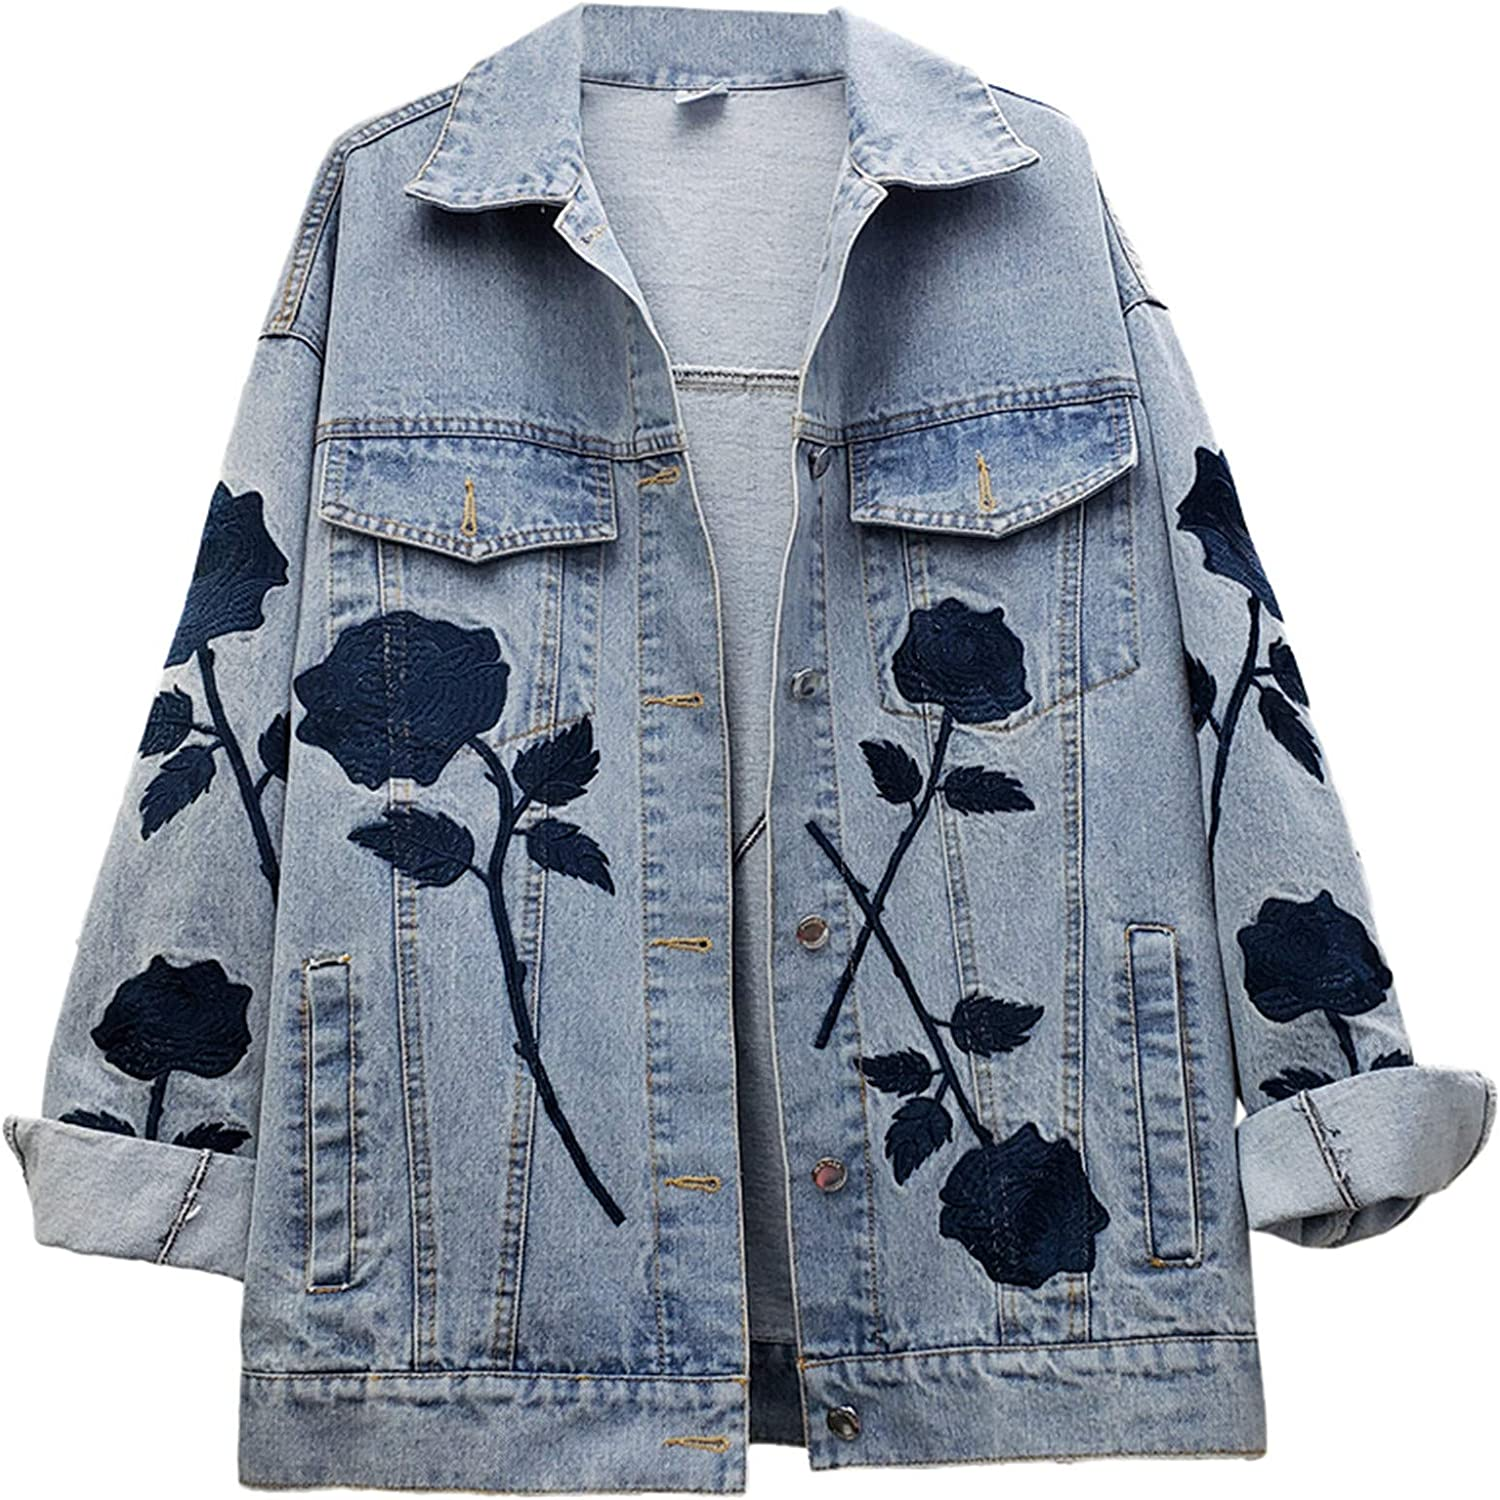 FJODE Autumn Embroidery Flowers Print Loose Mid-Length Jeans Coat Women's Long-Sleeved Denim Jacket